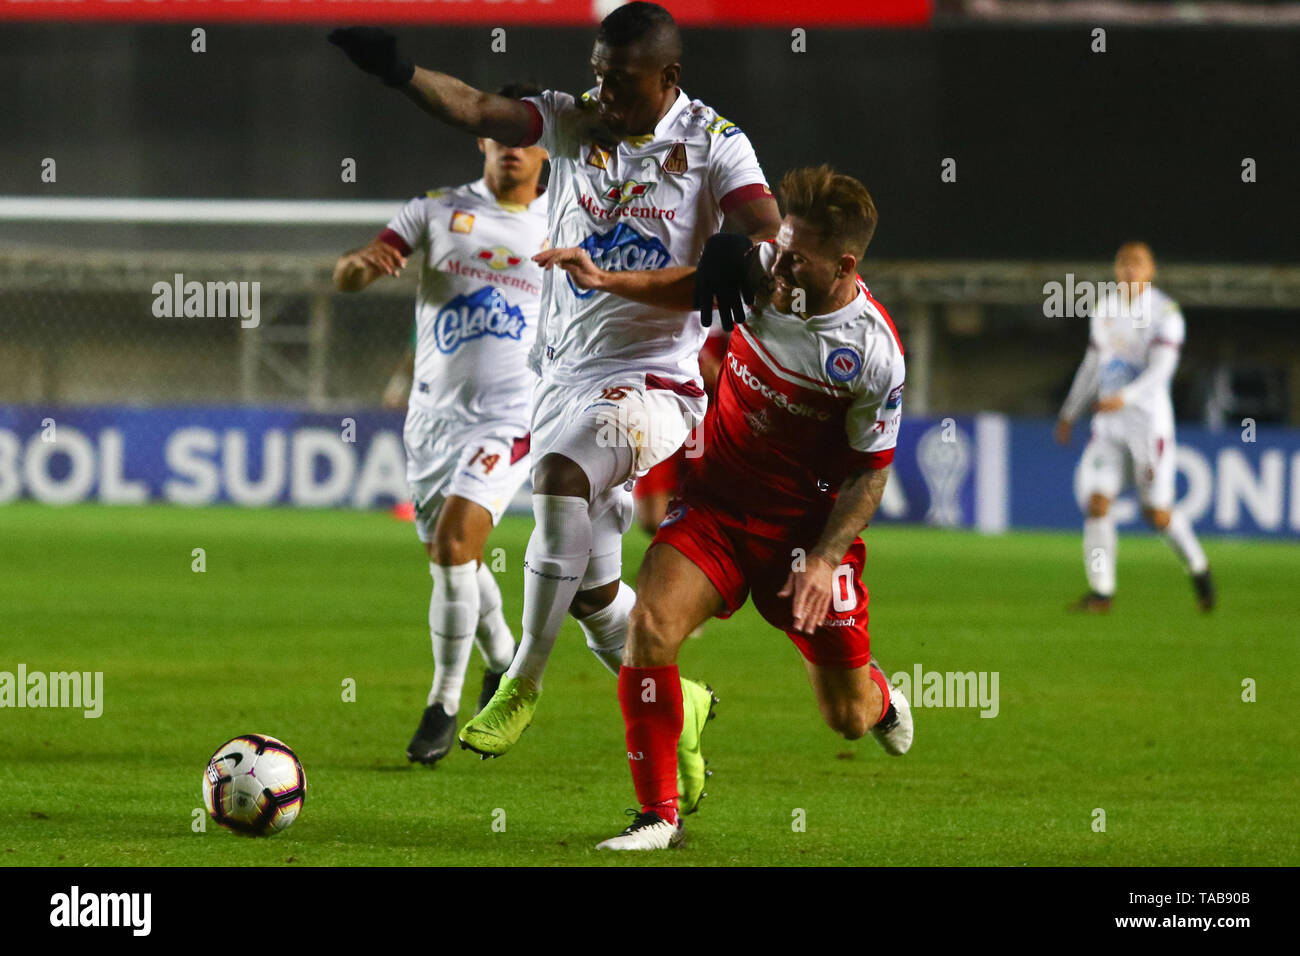 BUENOS AIRES, 23.05.2019: Alexis Mac Allister during the match between Argentinos Juniors and Deportes Tolima for the 2nd round of Conmebol Sudamerica - Stock Image